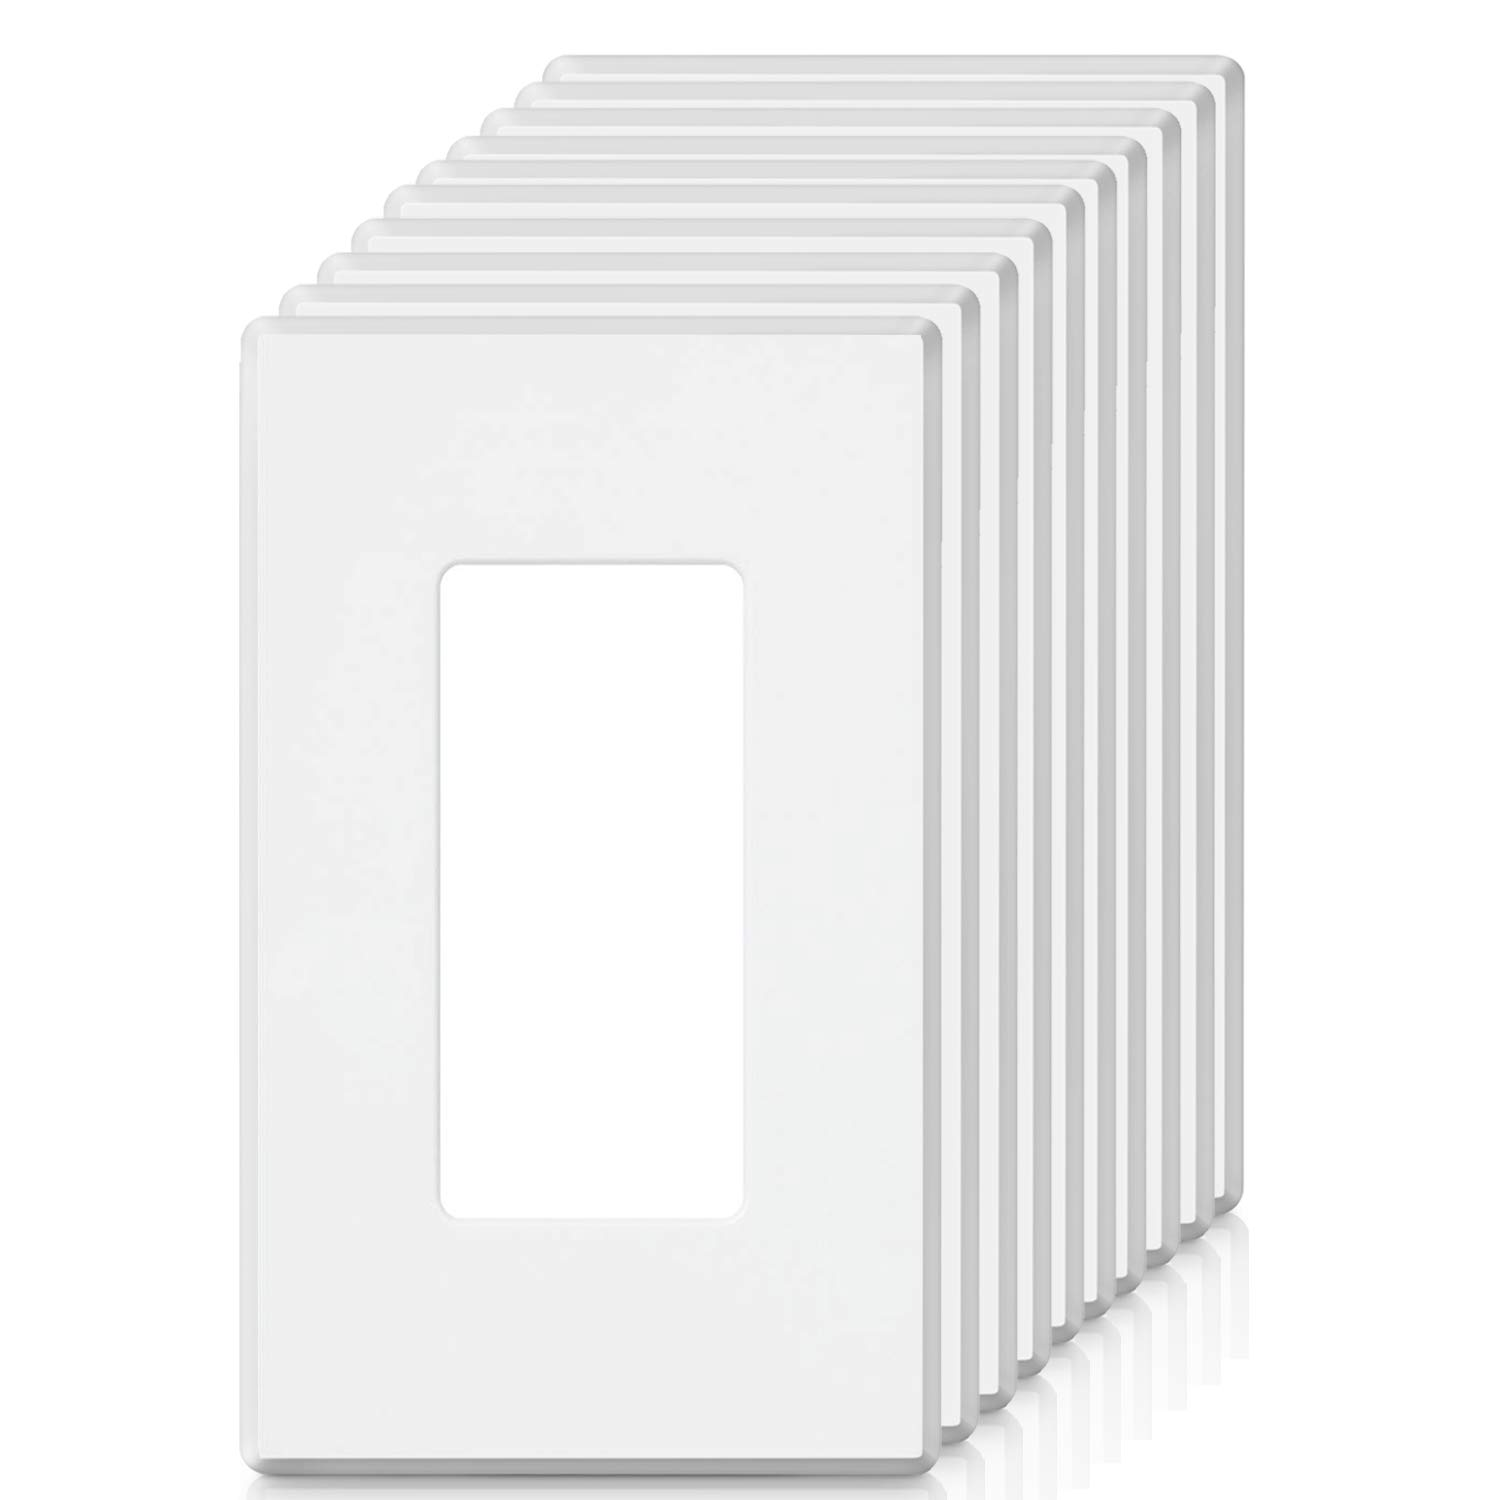 [10 Pack] BESTTEN 1-Gang Screwless Wall Plate, USWP2 Elegance White Series, Standard Outlet Cover for Light Switch, Dimmer, Sensor, Timer, and Receptacle, Residential and Commercial, UL Listed